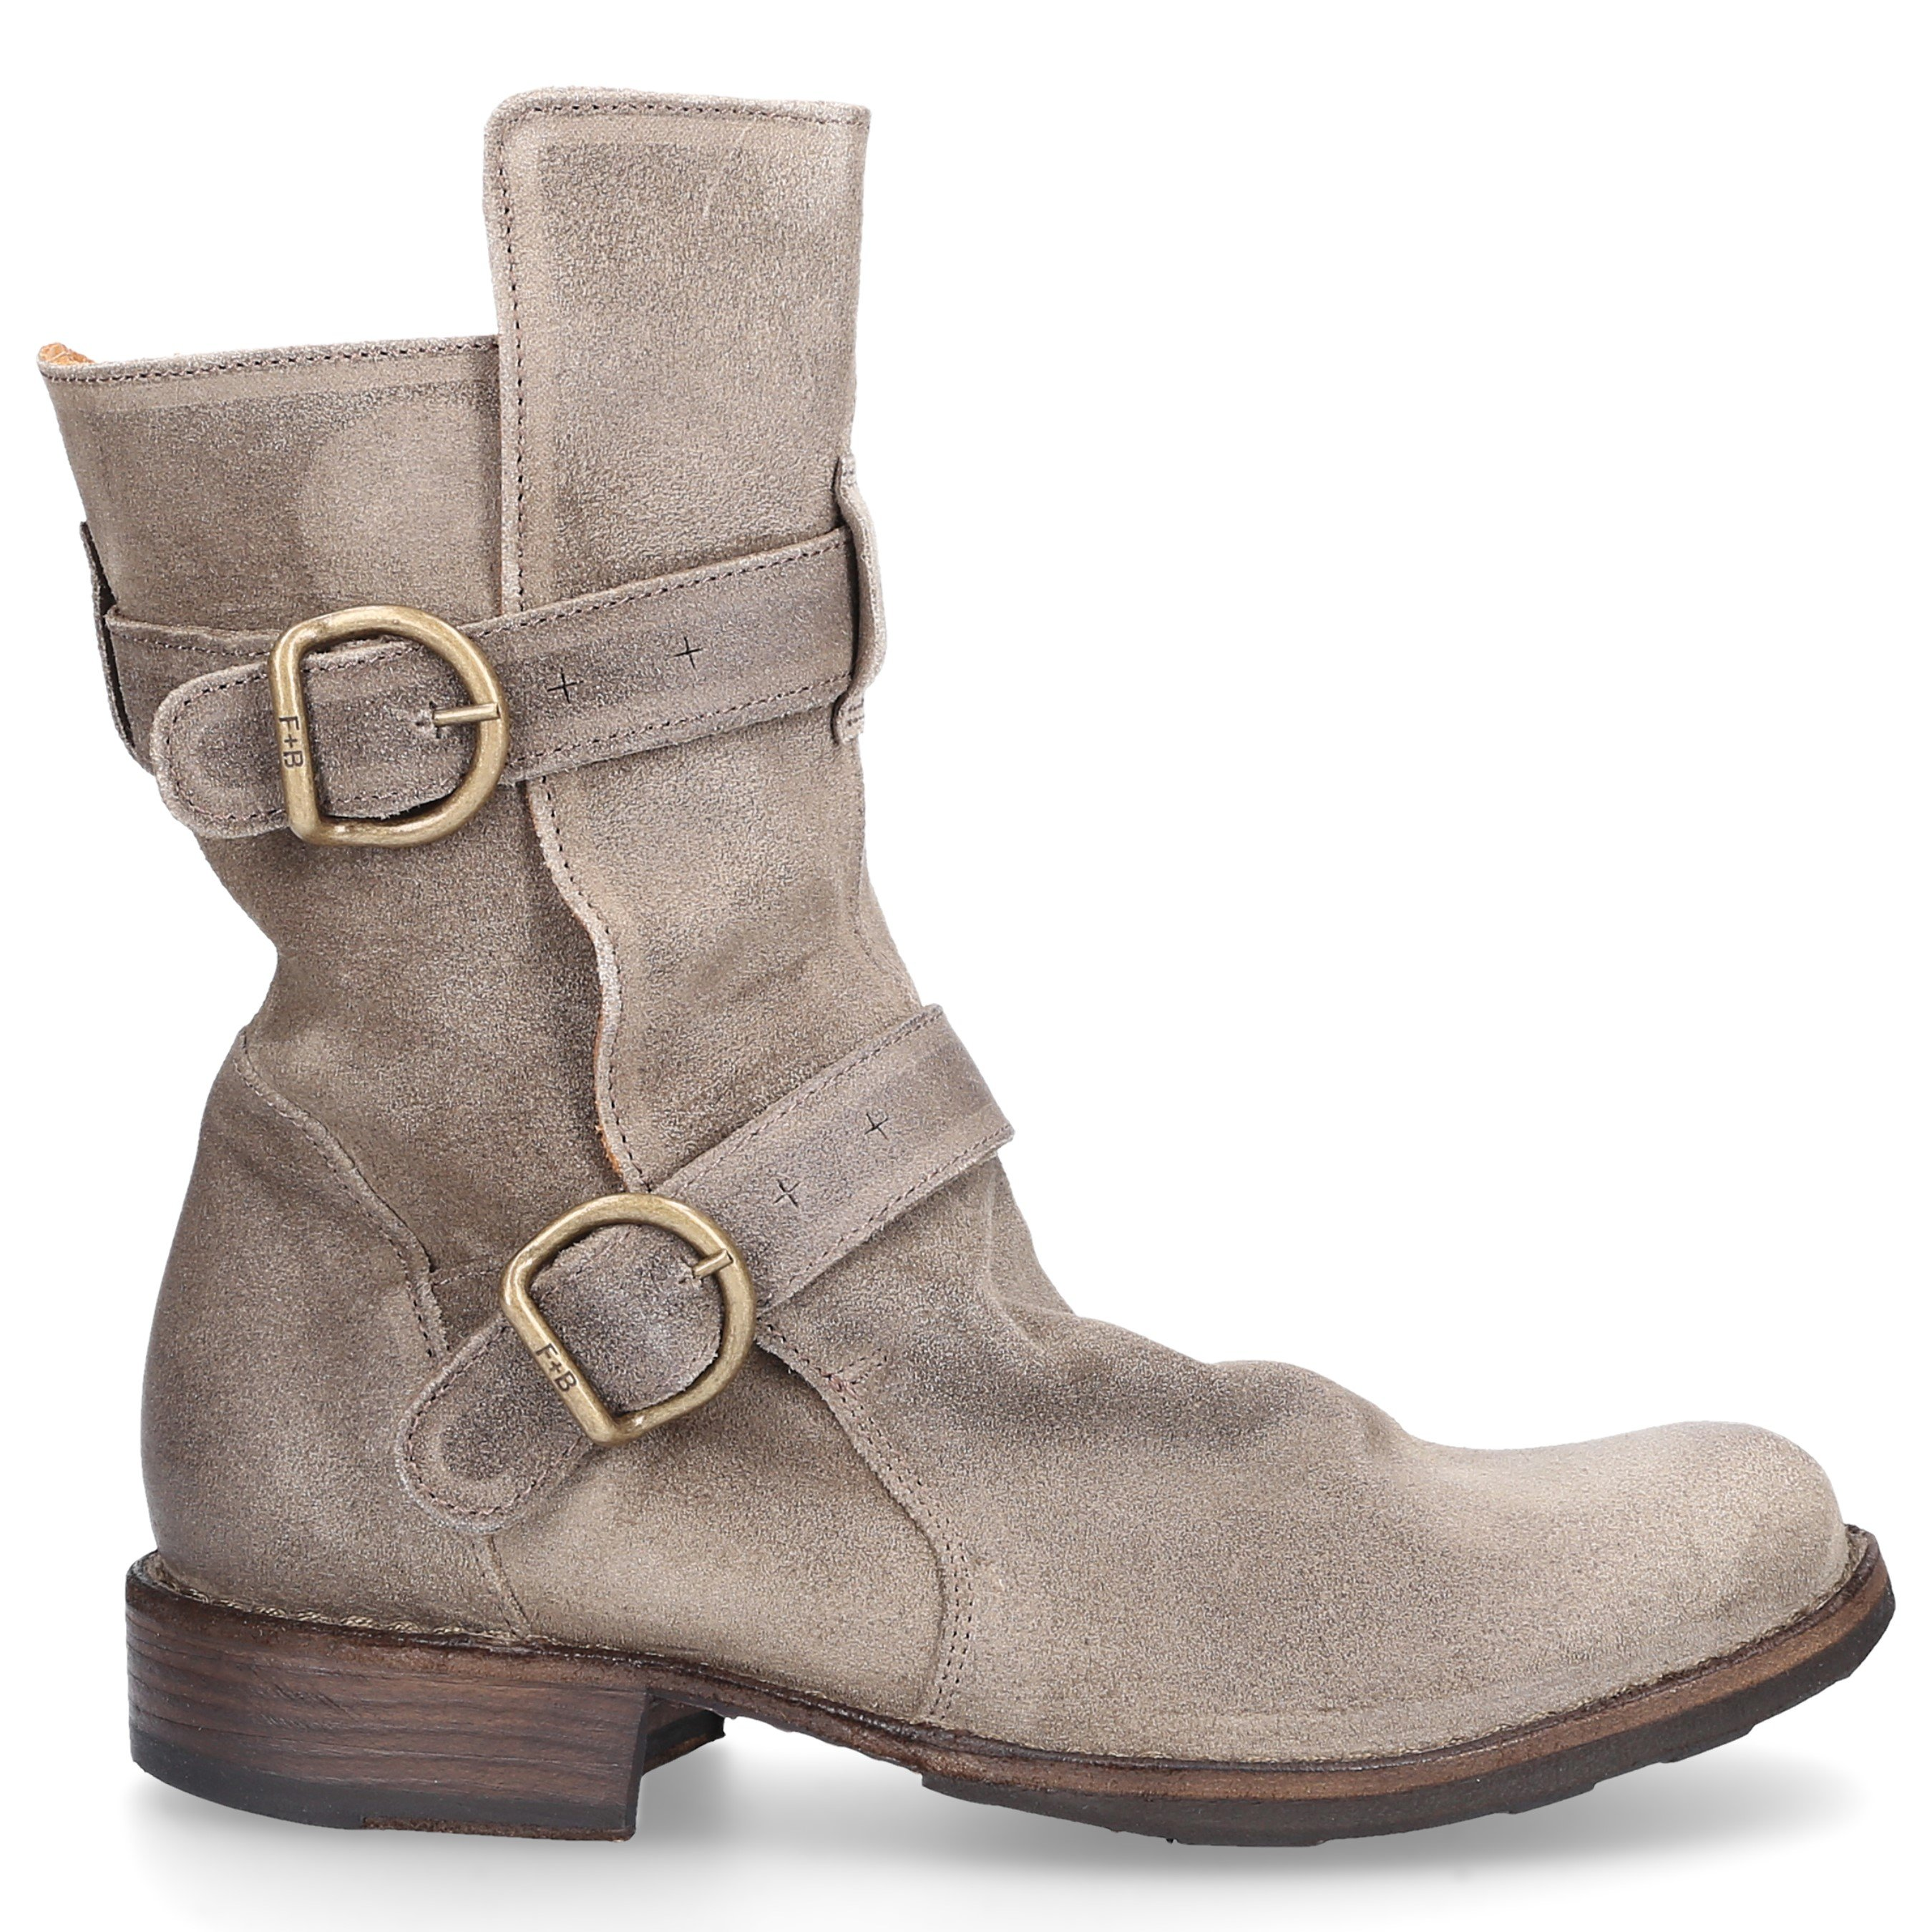 Fiorentini + Baker ANKLE BOOTS BEIGE ETERNITY 713-GB